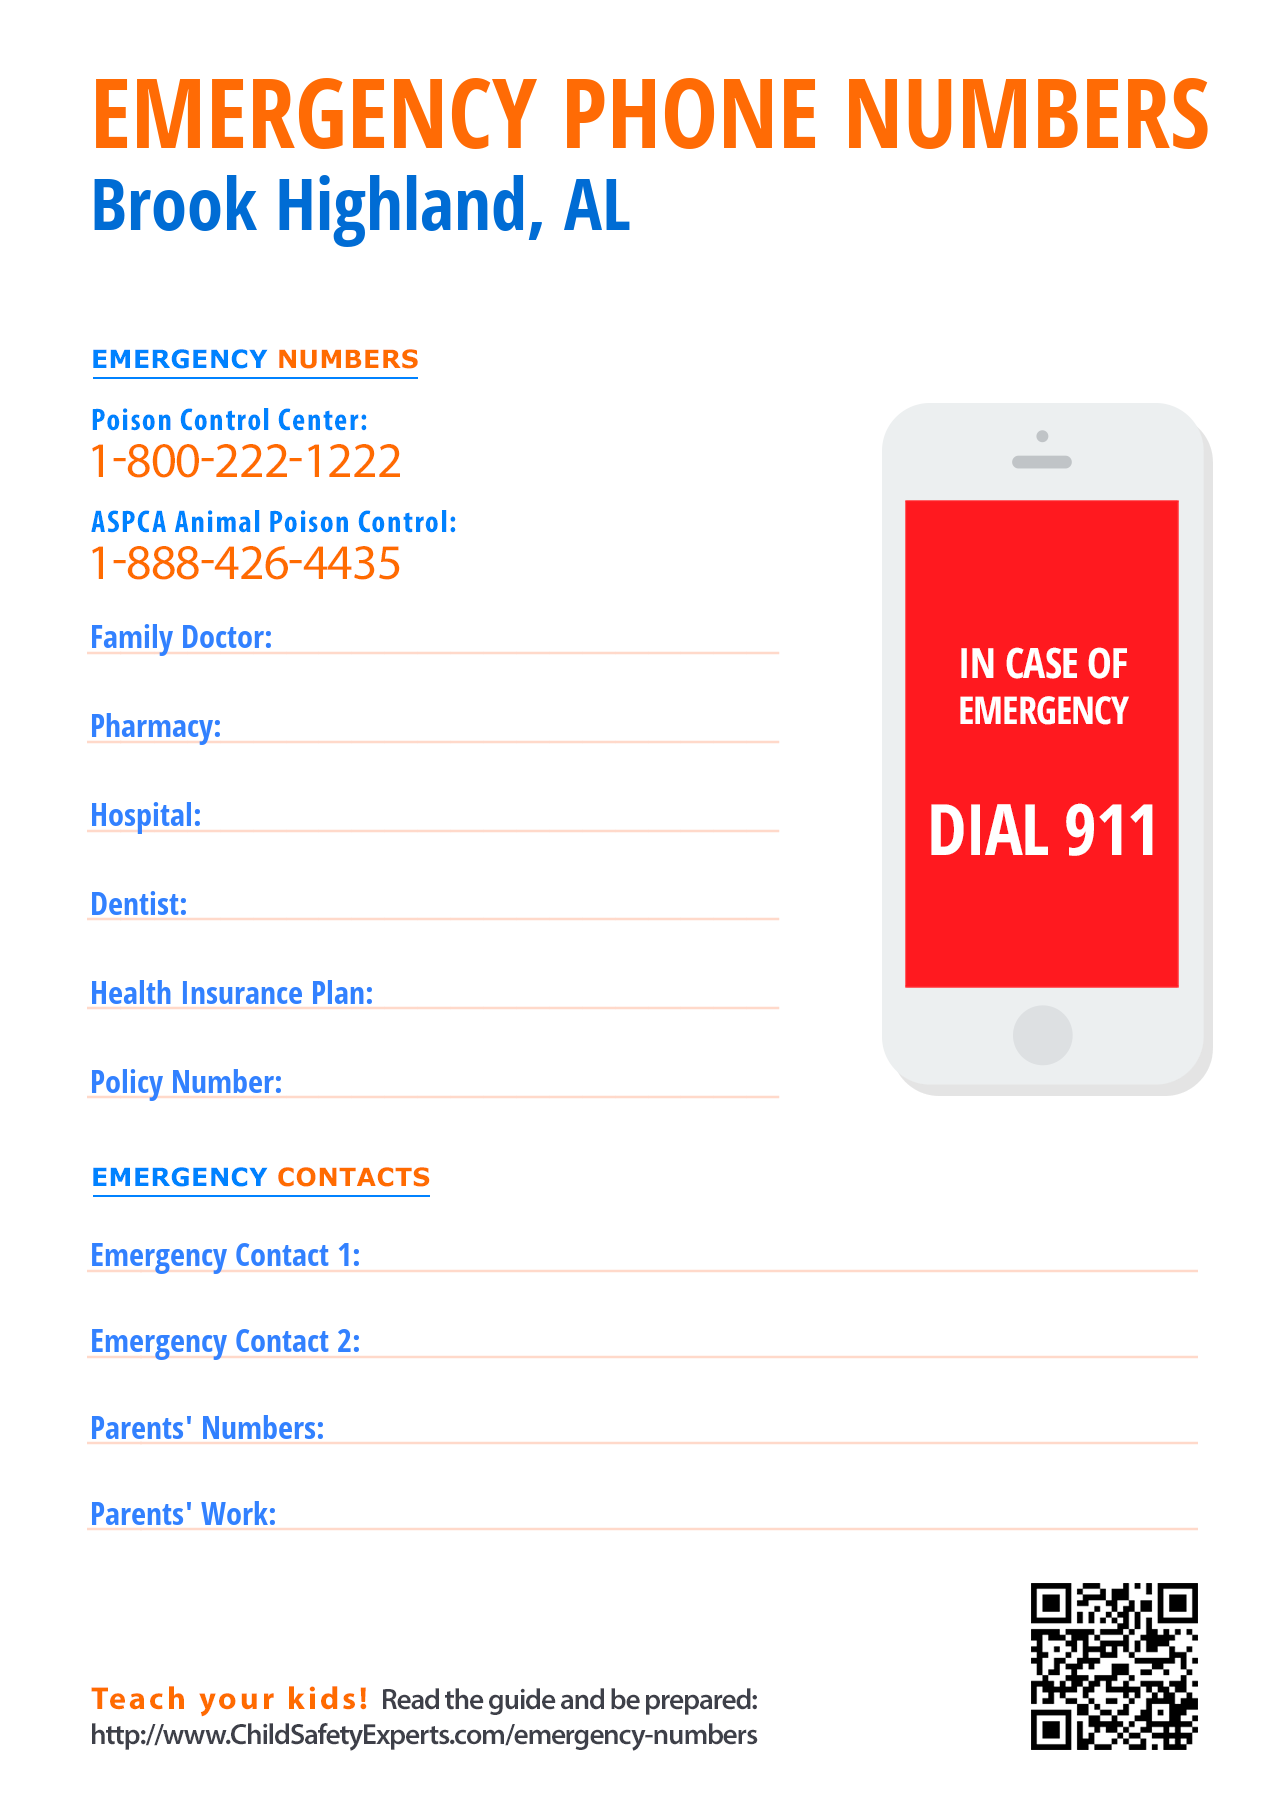 Important emergency phone numbers in Brook Highland, Alabama